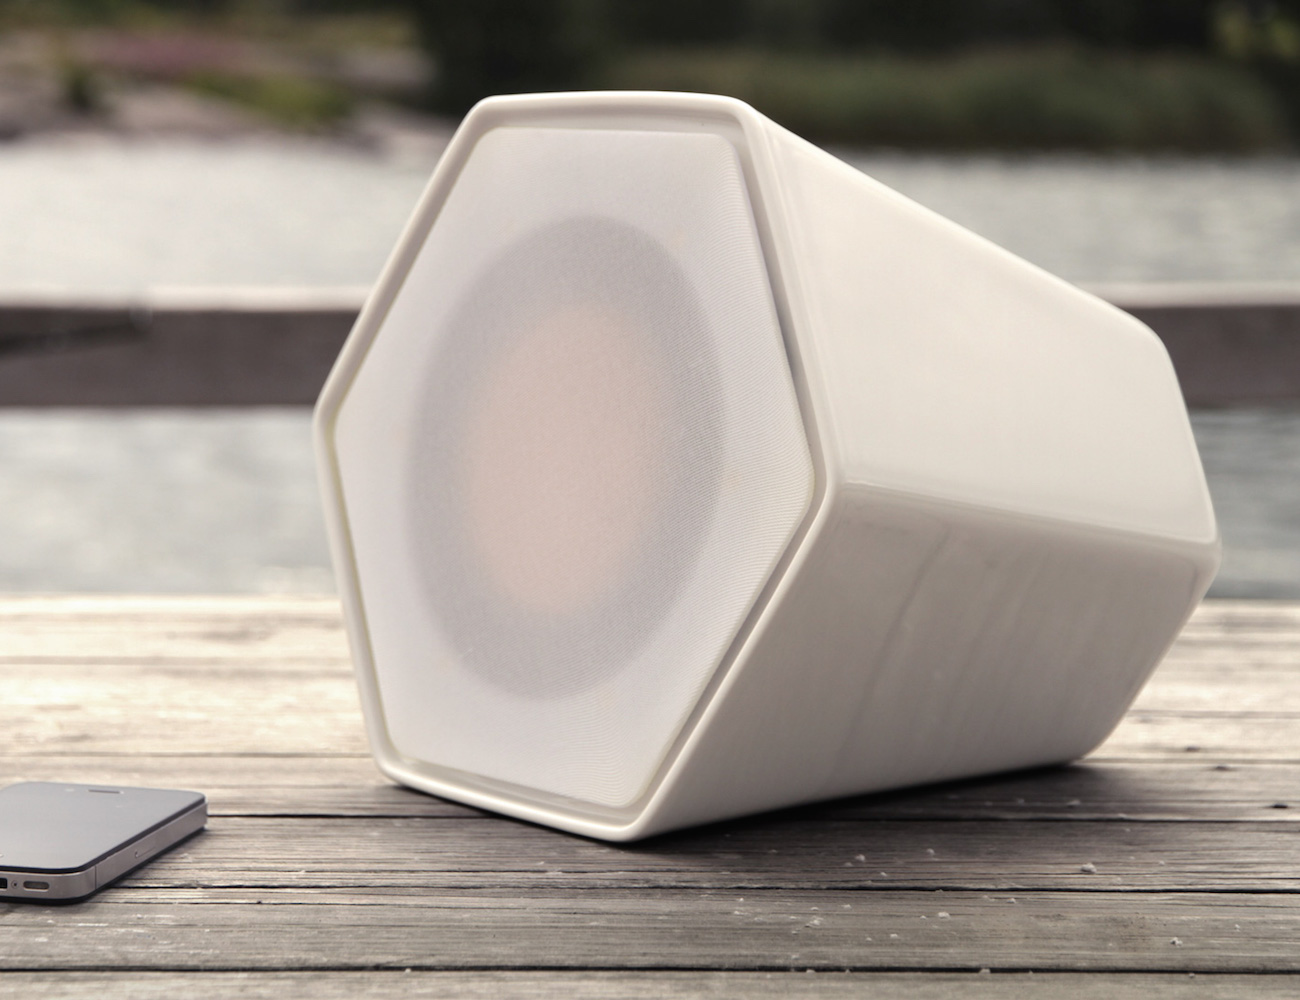 Unmonday Model 4.3 Wireless Speaker